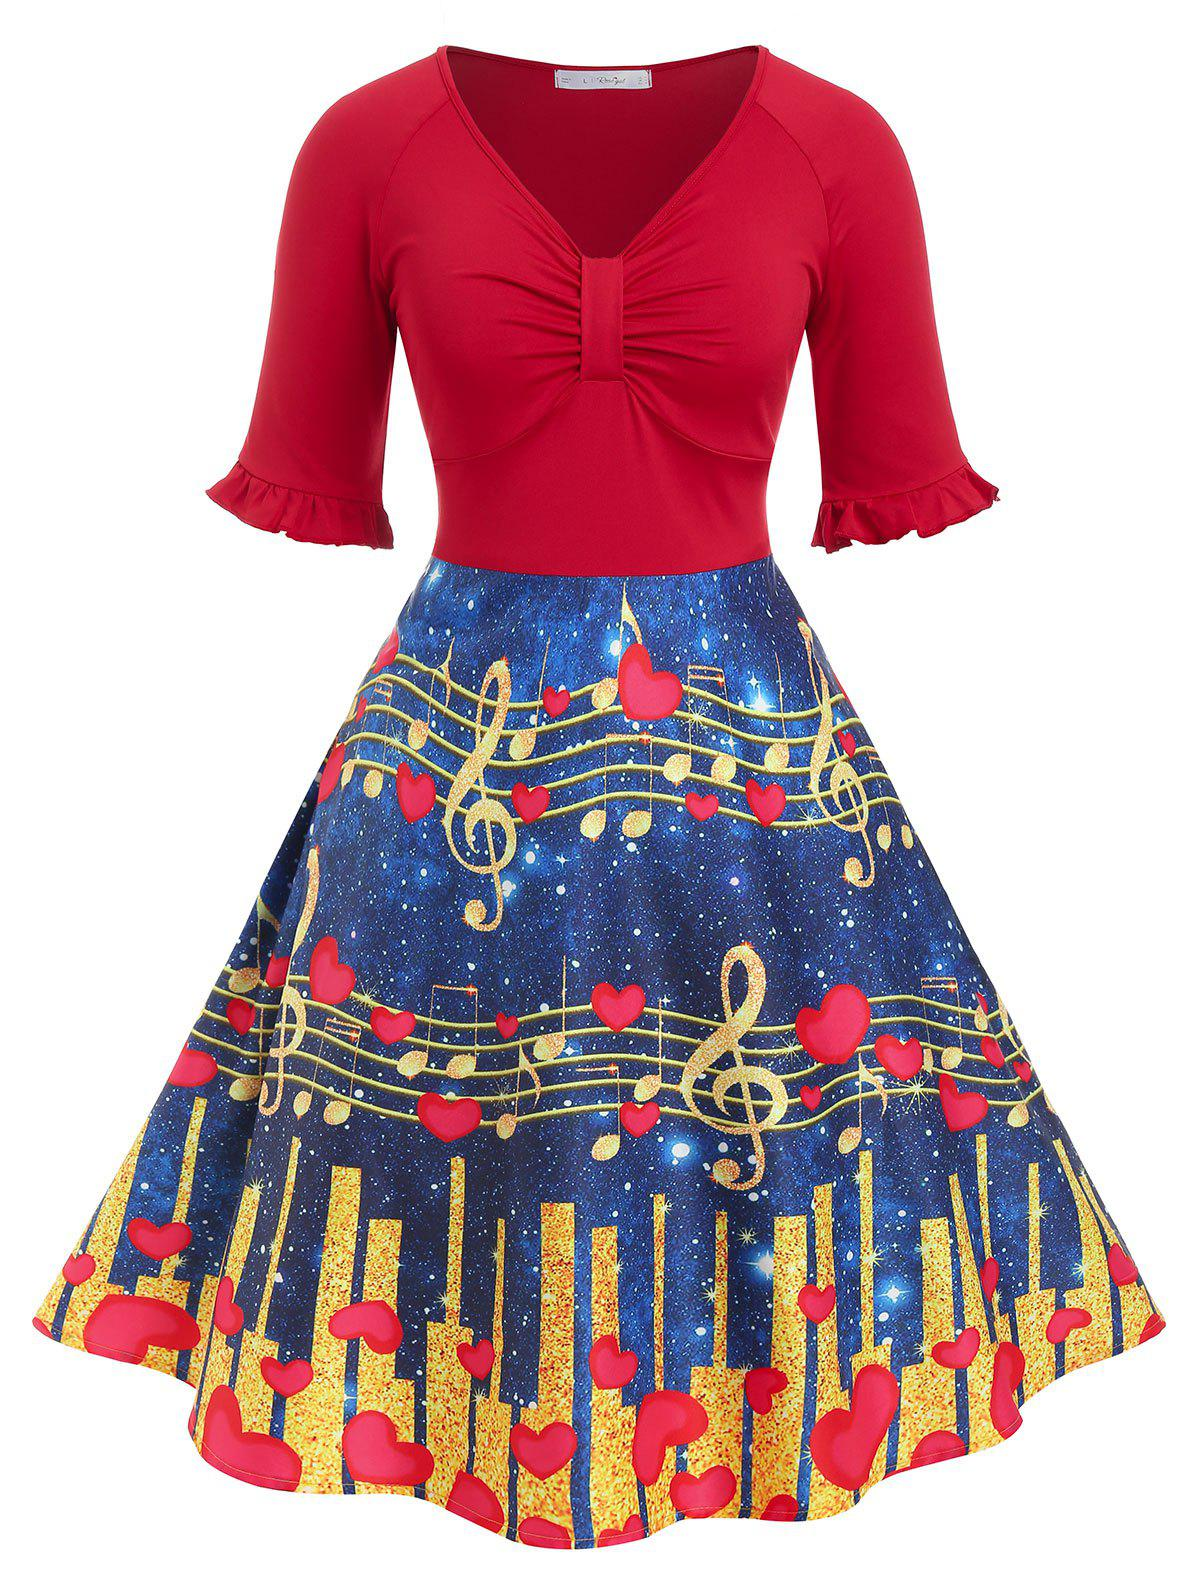 Plus Size Vintage Musical Notes Heart Print Dress - RED 5X